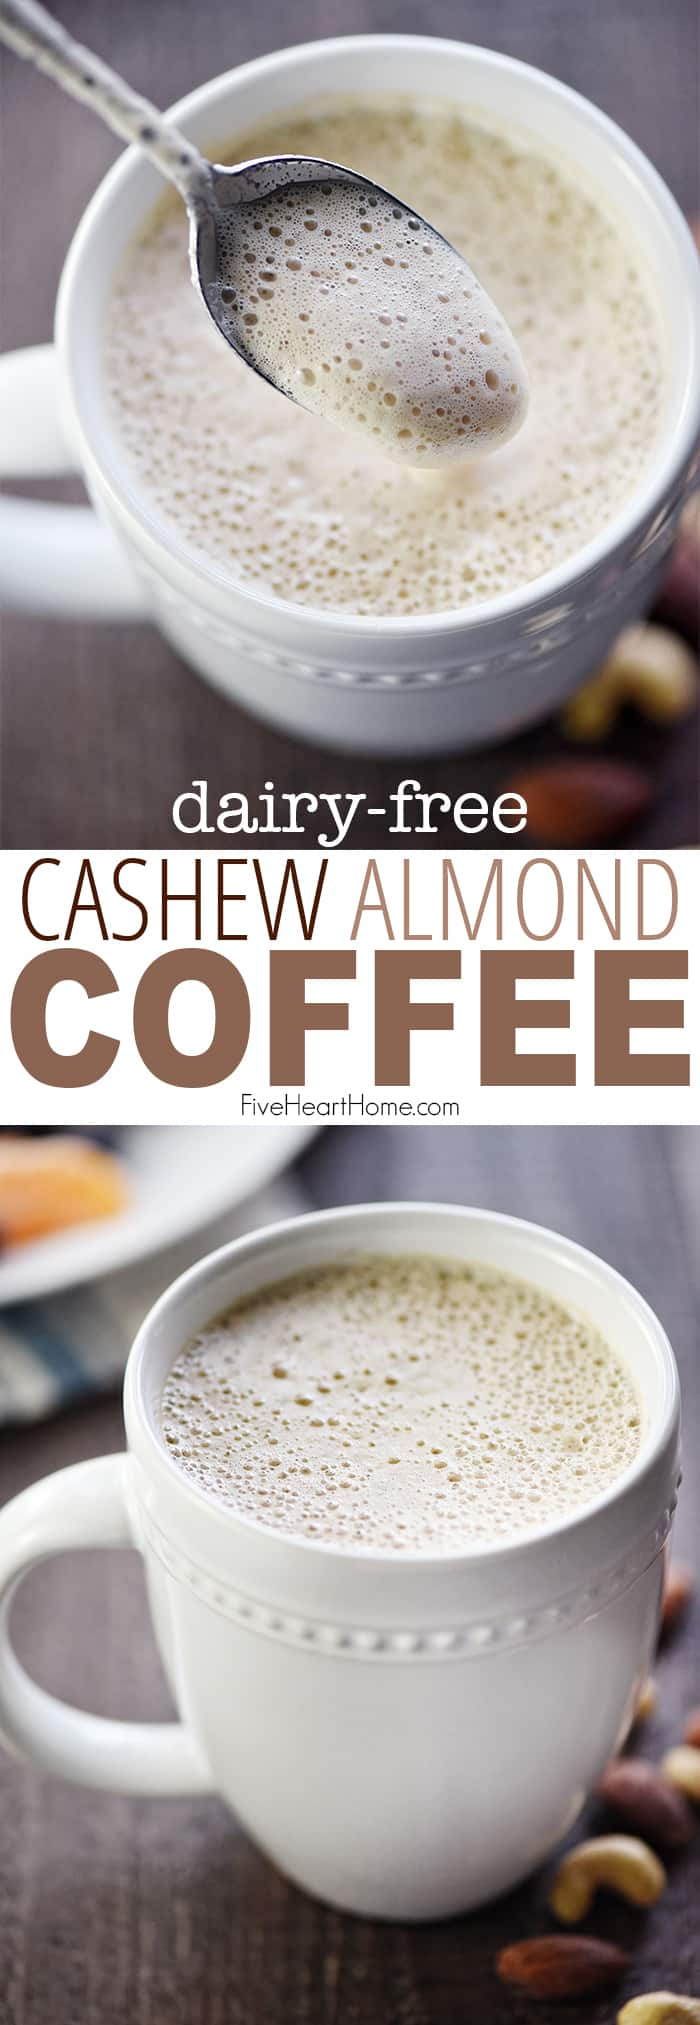 Almond Cashew Coffee ~ a rich, foamy, creamy latte made with NO DAIRY...the magical consistency and flavor are thanks to almonds, cashews, & maple syrup! | FiveHeartHome.com